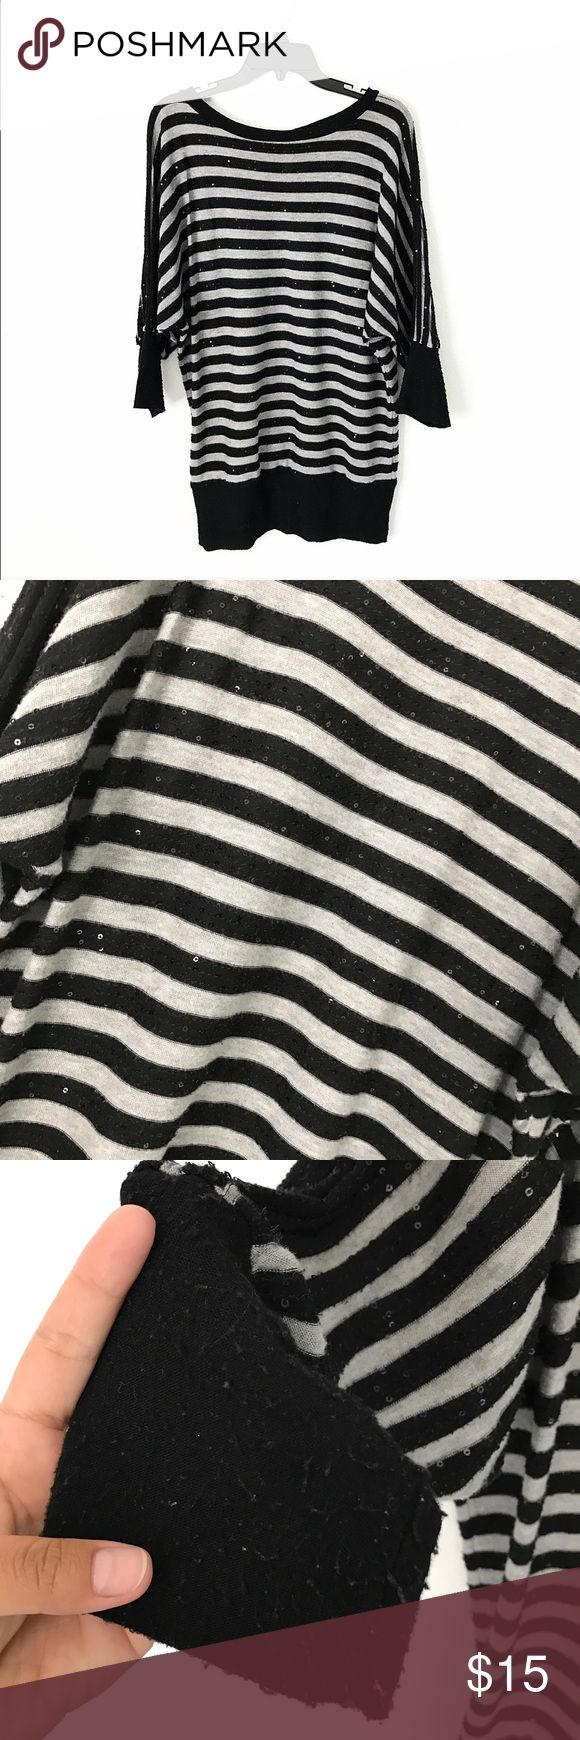 Strip sequence top Black and grey strip batwing top with sequence. Used, but still in great condition. Third picture shows that it has lint balls at the end of sleeve and the bottom of the shirt. Forever 21 Tops Blouses